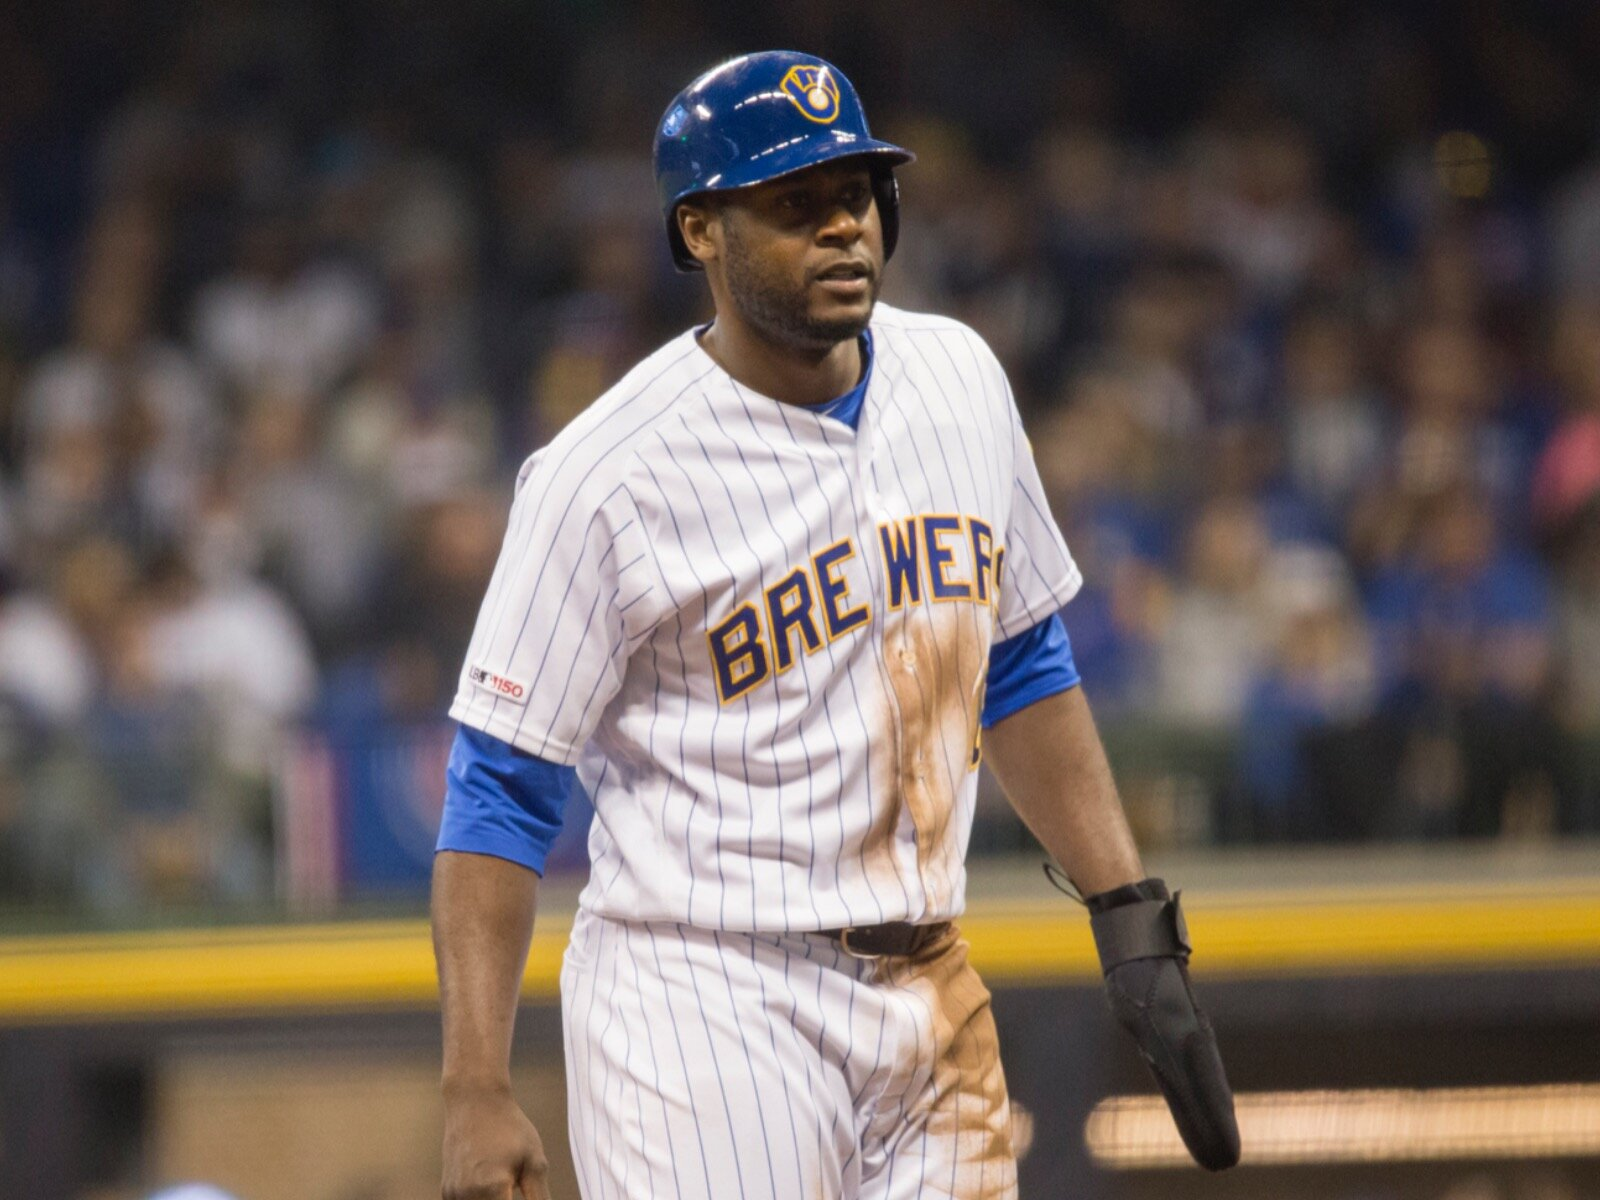 Brewers' Lorenzo Cain opts out of 2020 baseball season due to COVID-19 concerns